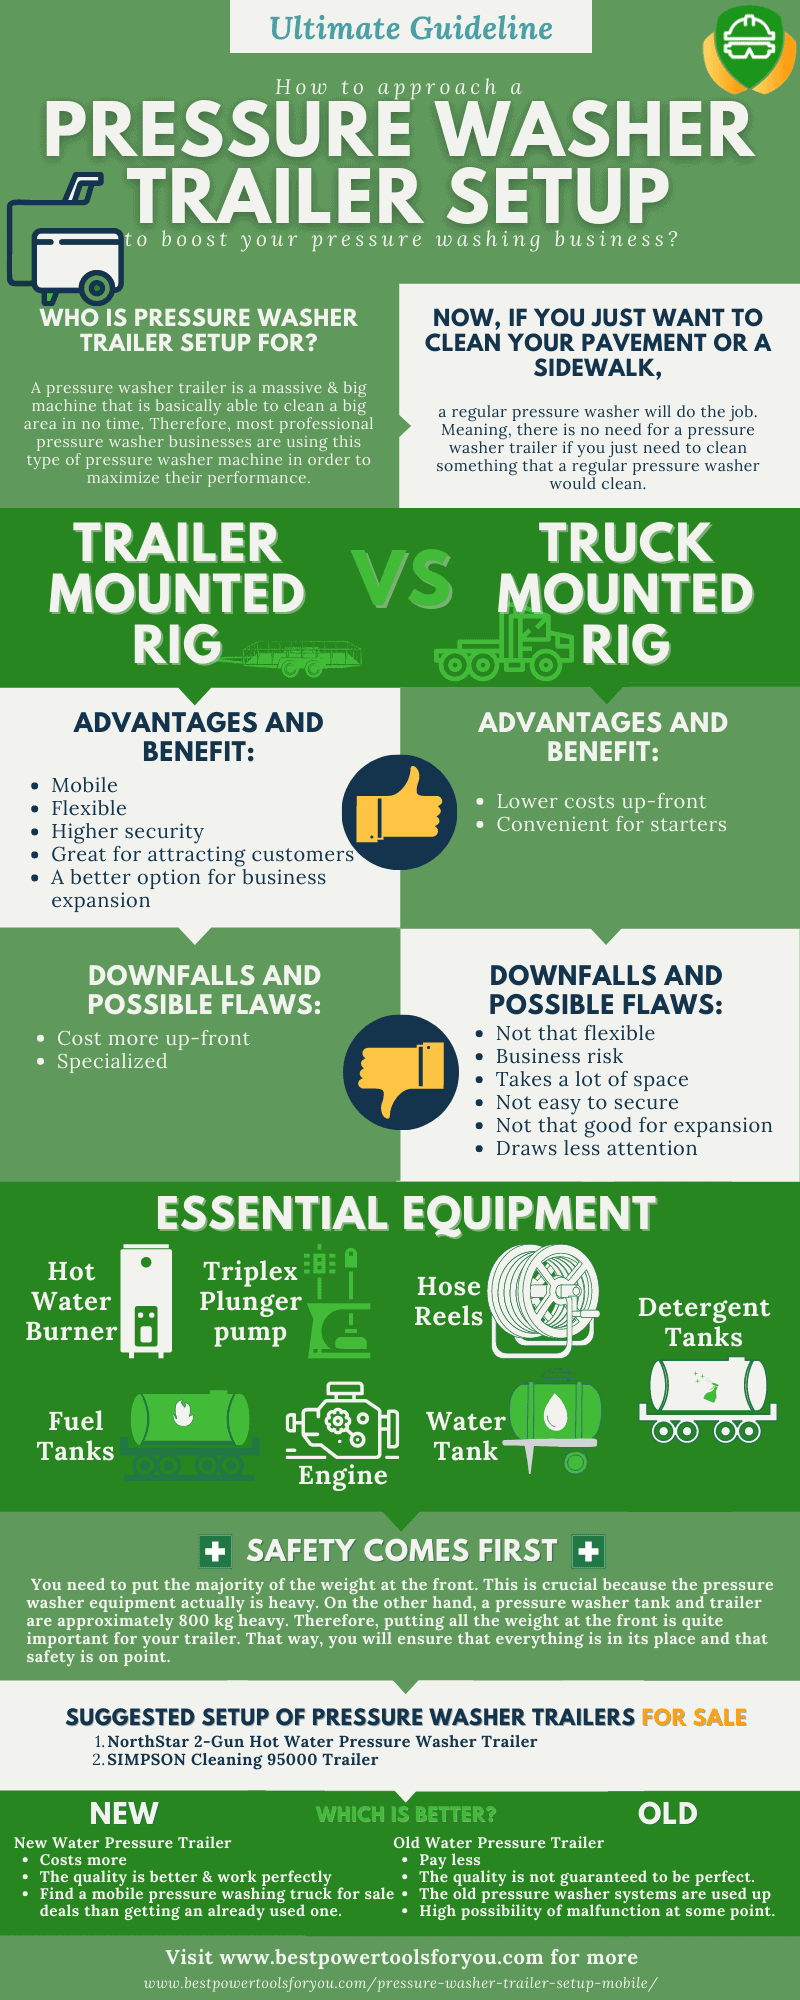 Infographic of setting up a pressure washer trailer